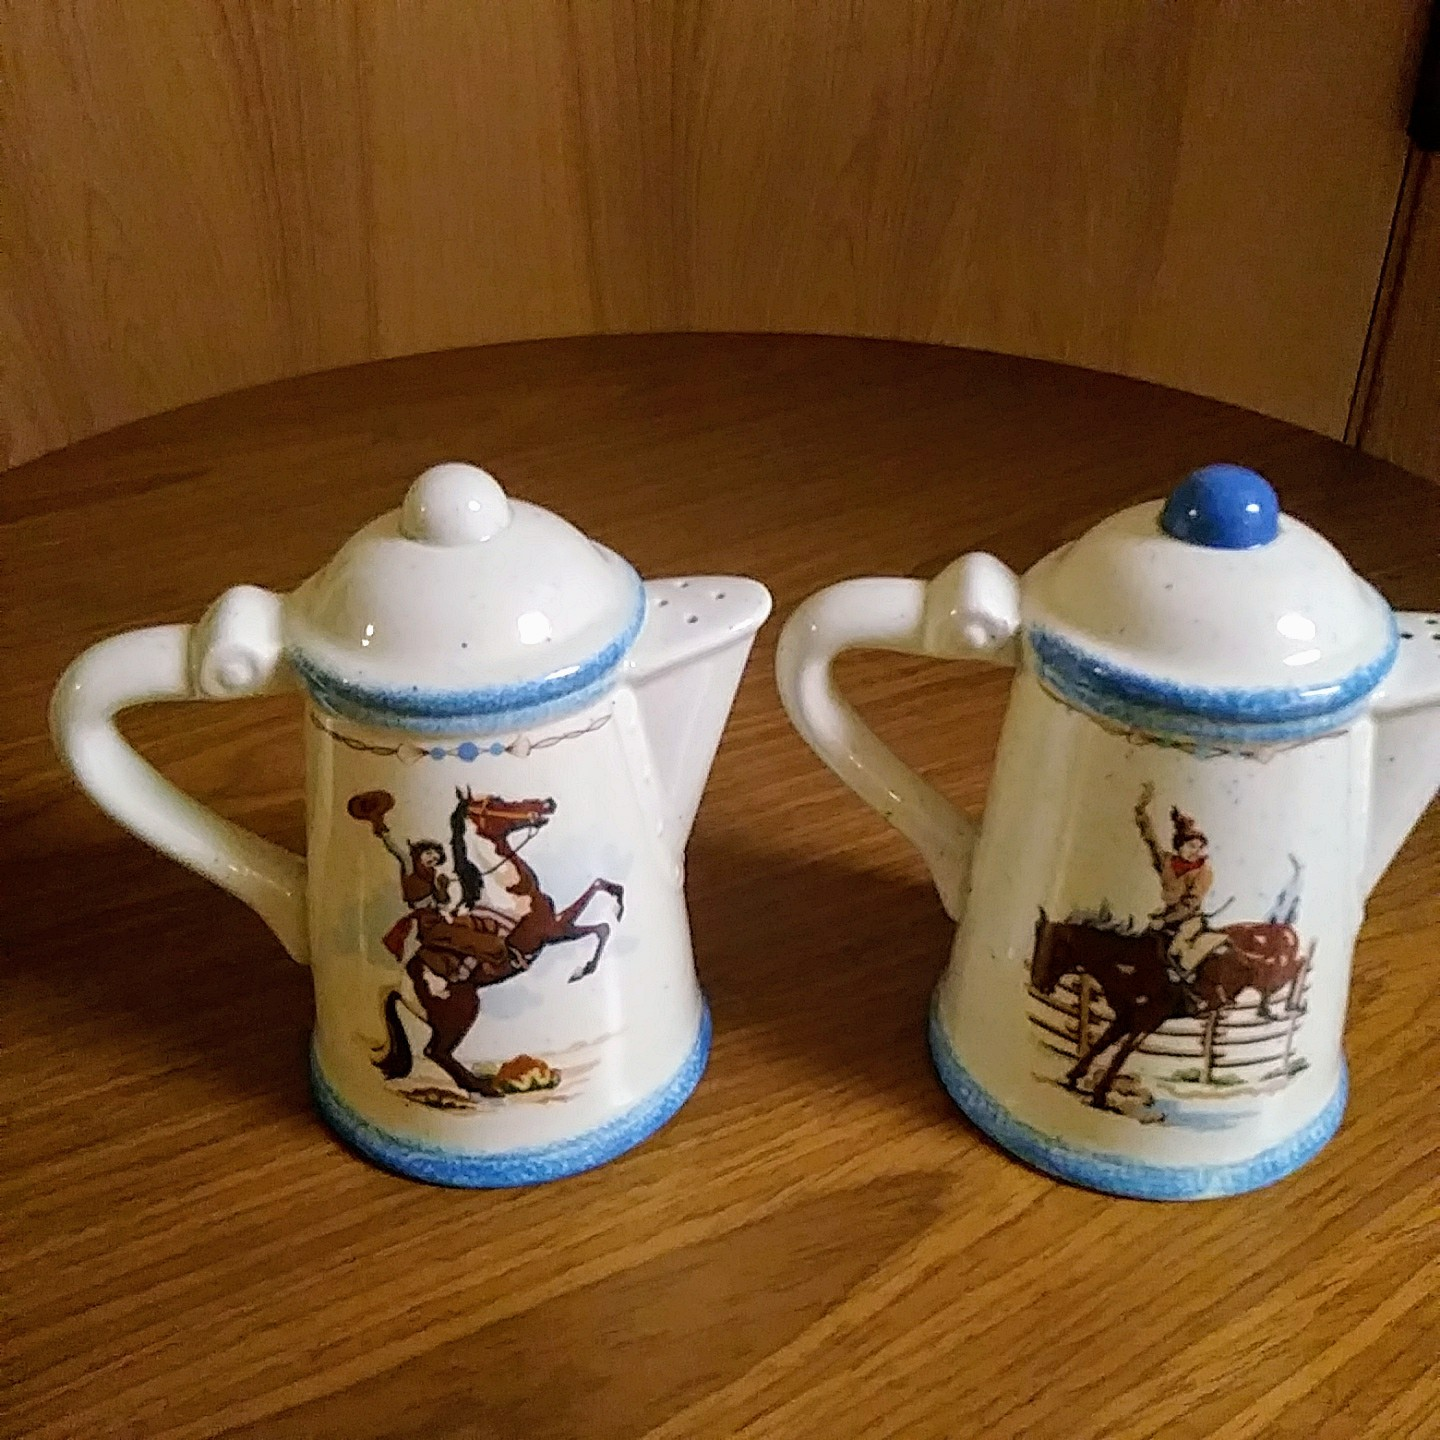 Paris & BeeBee Cow Girls Salt & Pepper Shakers   Made of Stoneware Set